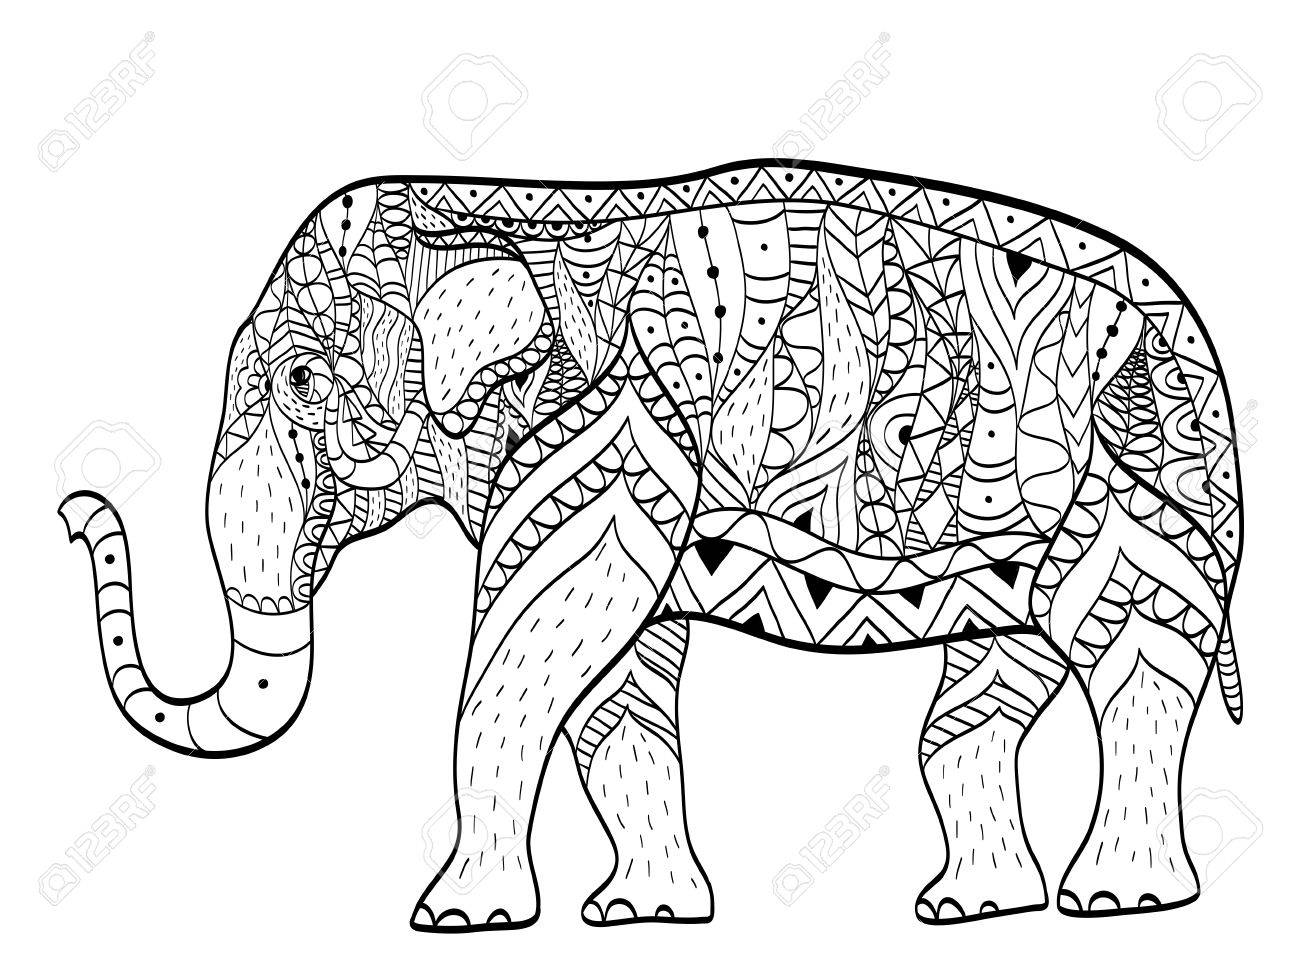 Elephant Coloring Book Vector For Adults Royalty Free Cliparts ...